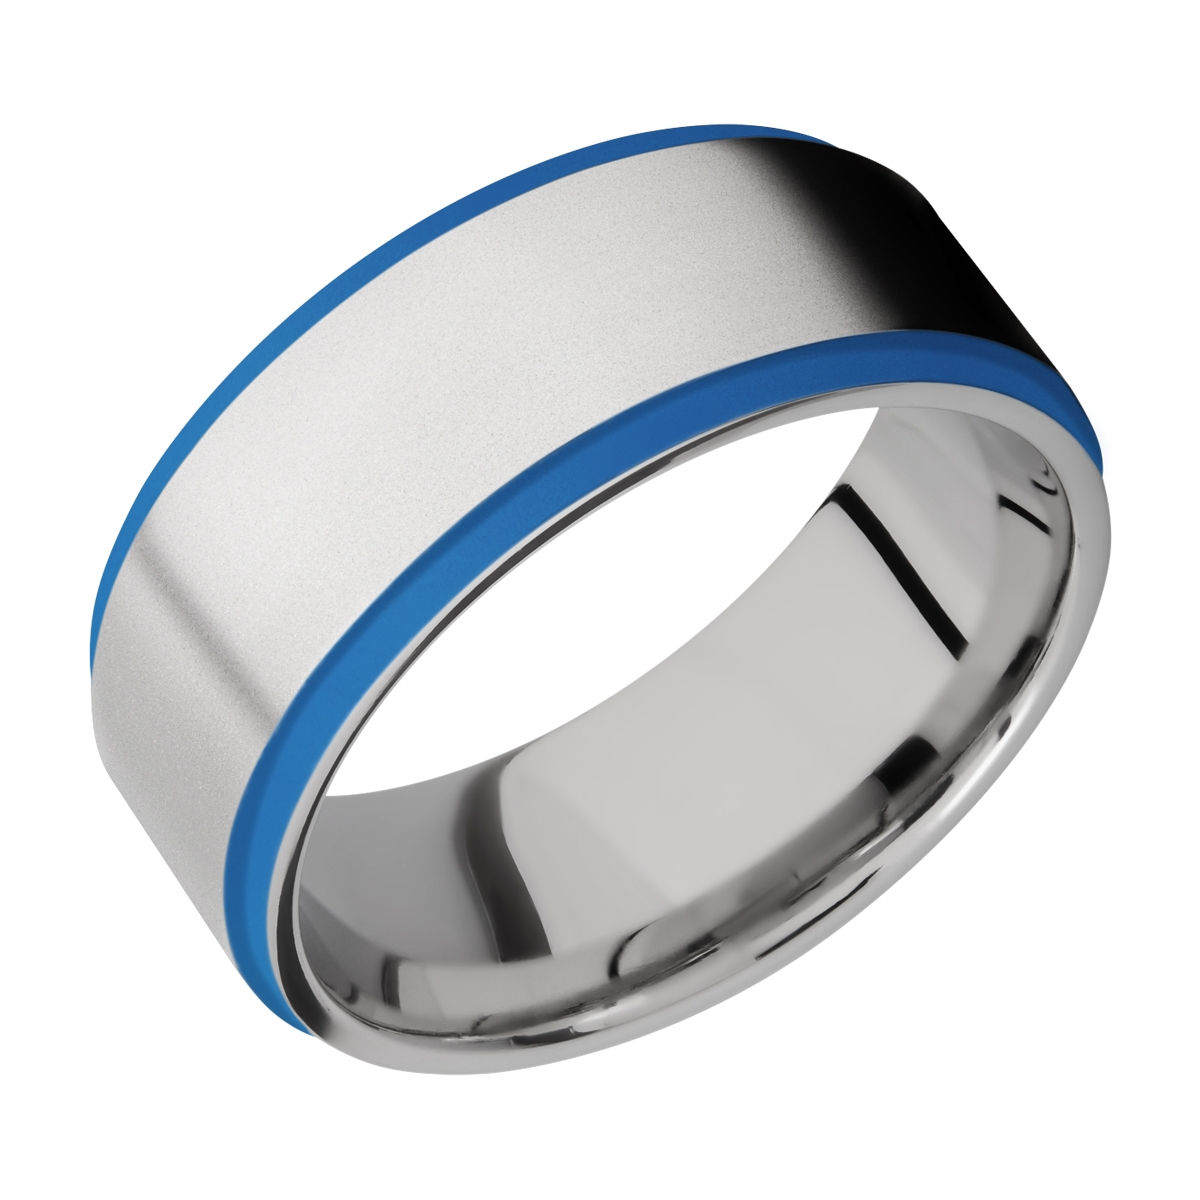 Lashbrook CC10FGE21EDGE/A/CERAKOTE Cobalt Chrome Wedding Ring or Band Alternative View 1